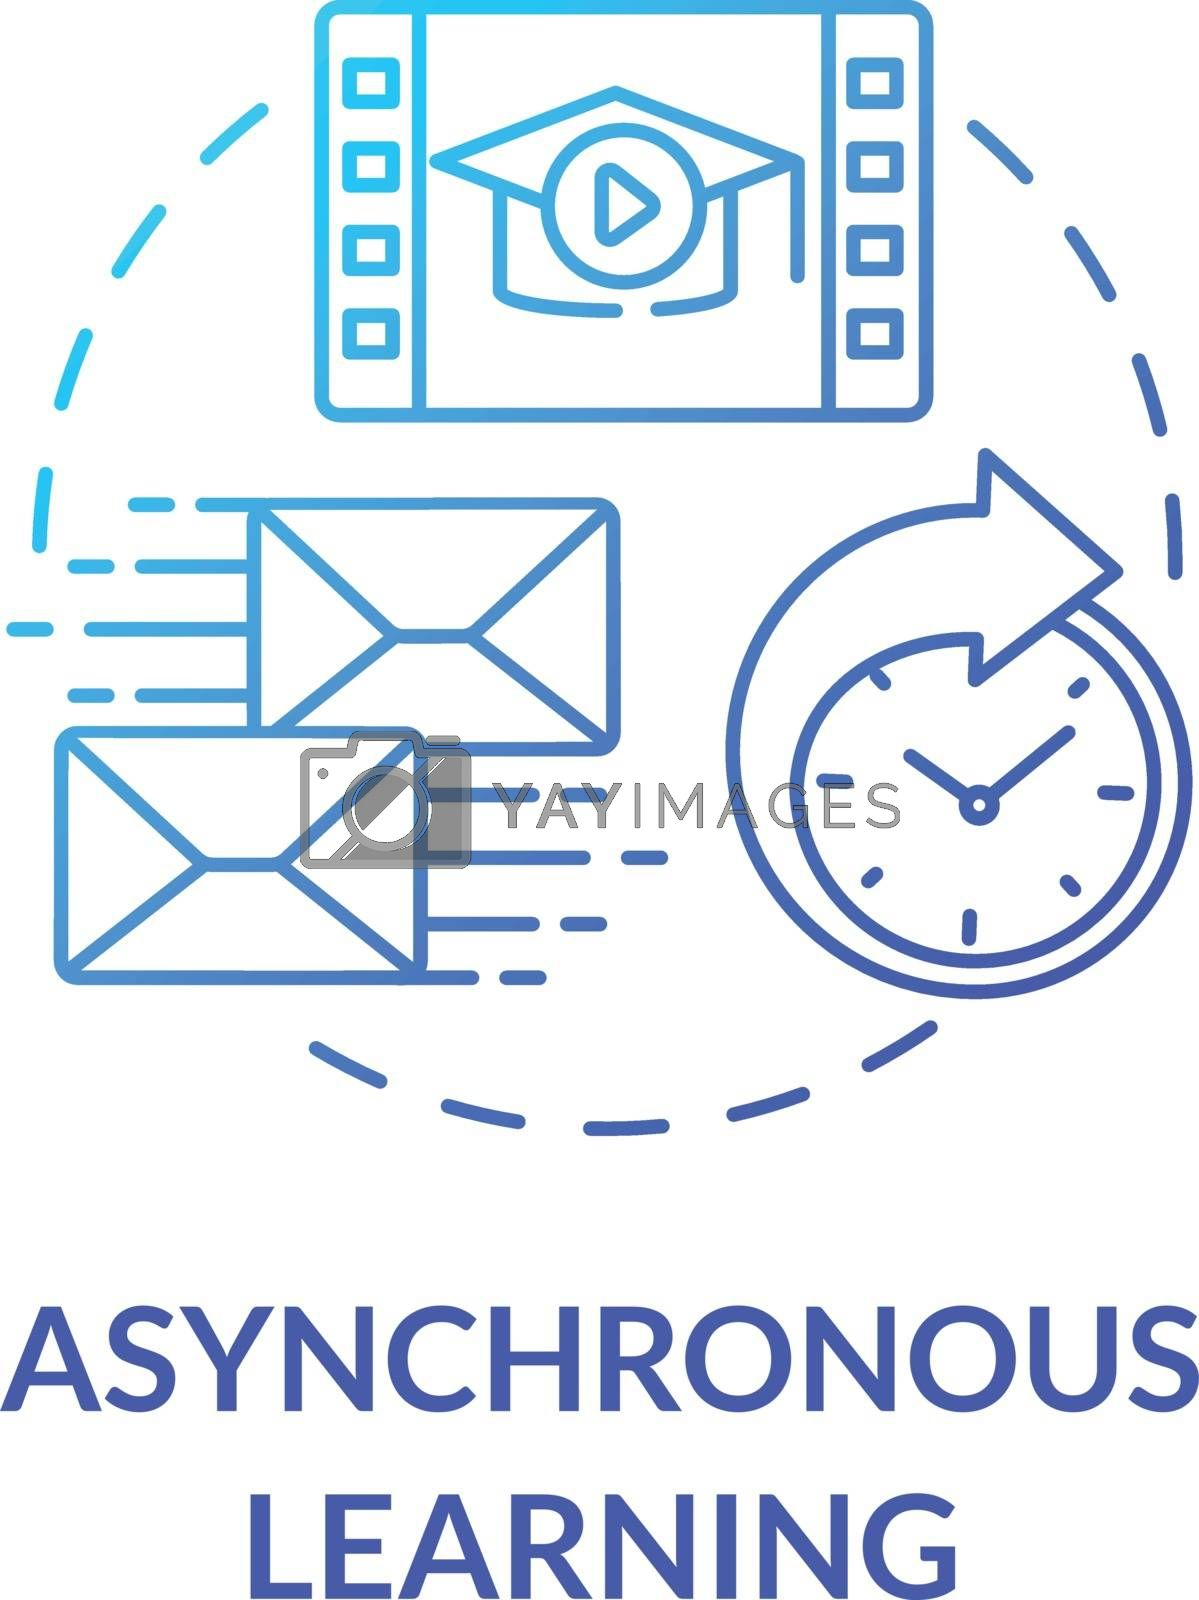 Asynchronous learning concept icon. Remote learning environment. Flexible education. Distance and correspondence education idea thin line illustration. Vector isolated outline RGB color drawing